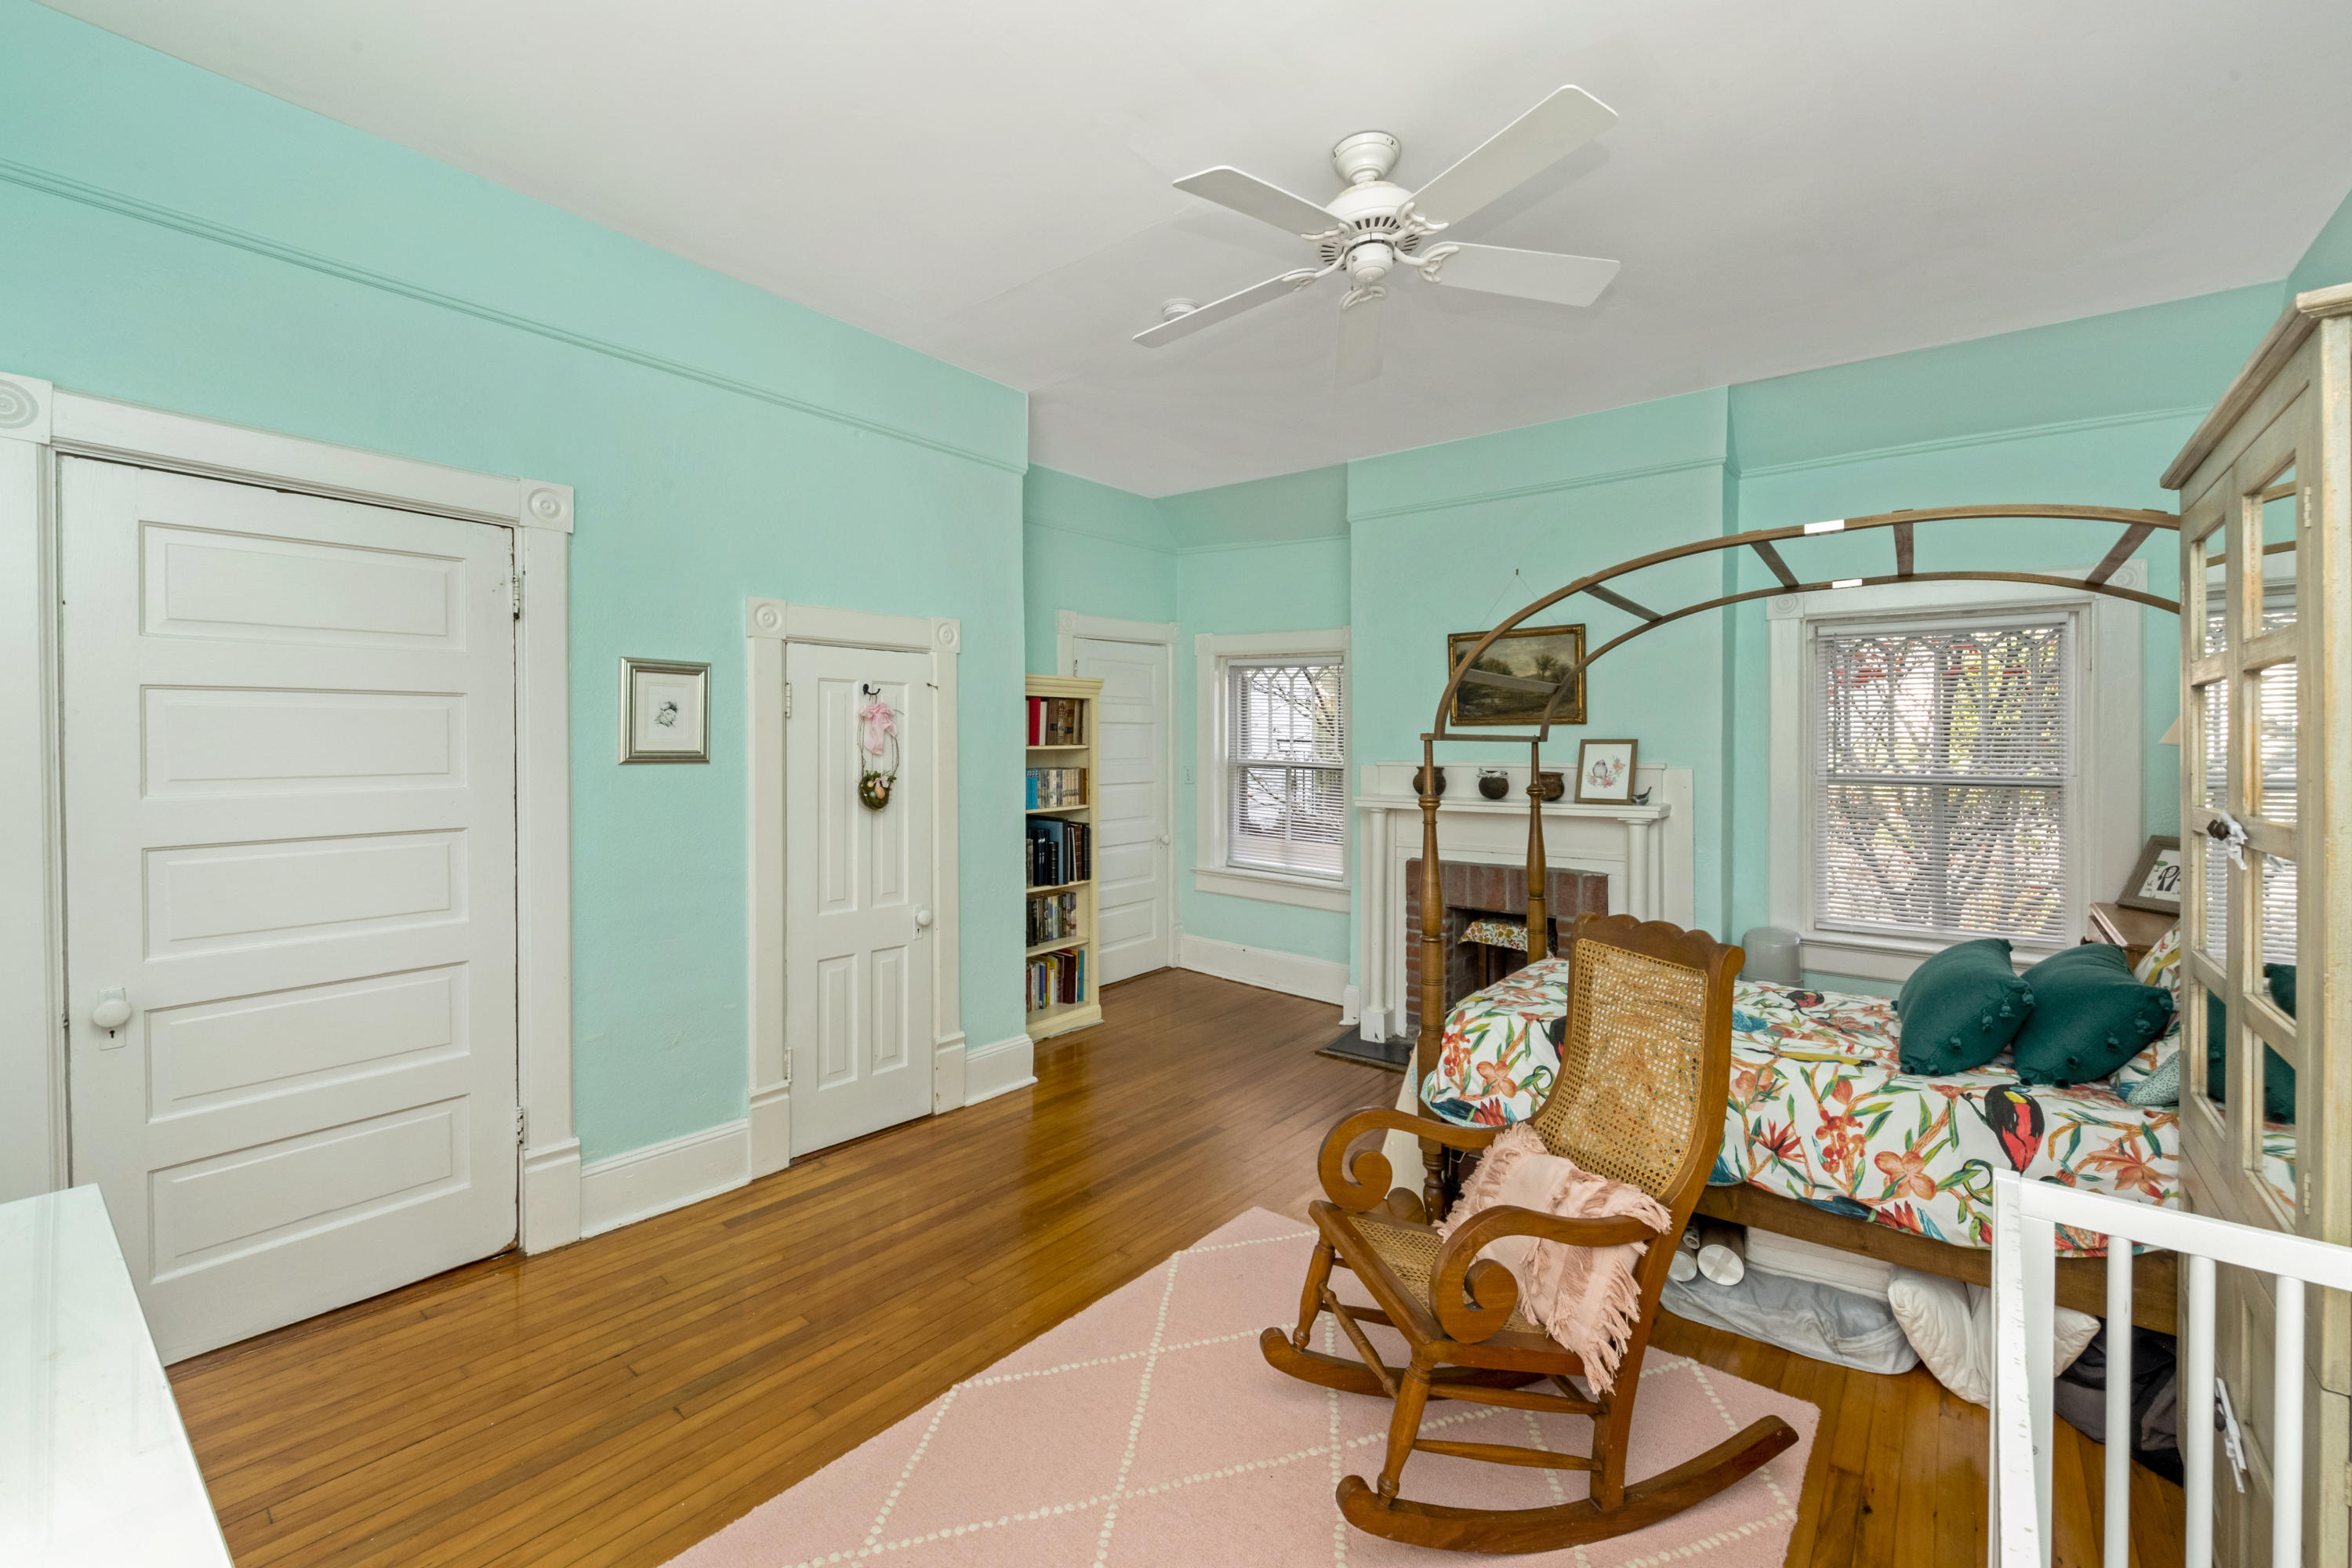 South of Broad Homes For Sale - 4 Weims, Charleston, SC - 9